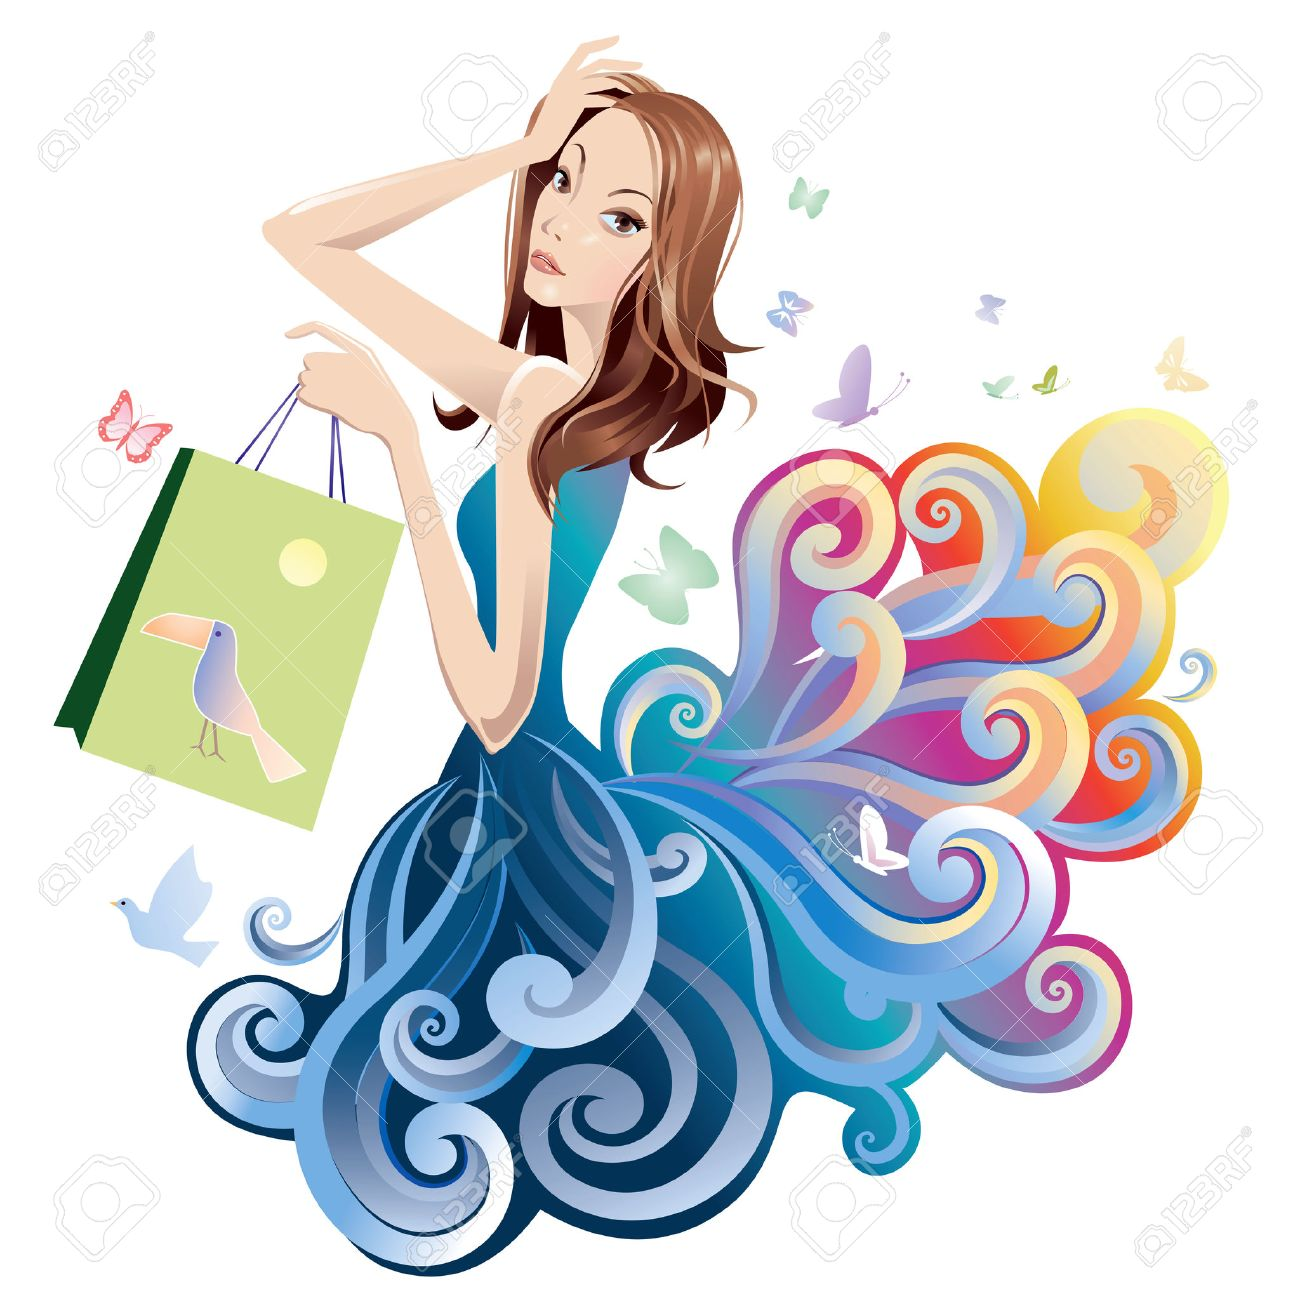 Woman shopping clipart 5 » Clipart Station.